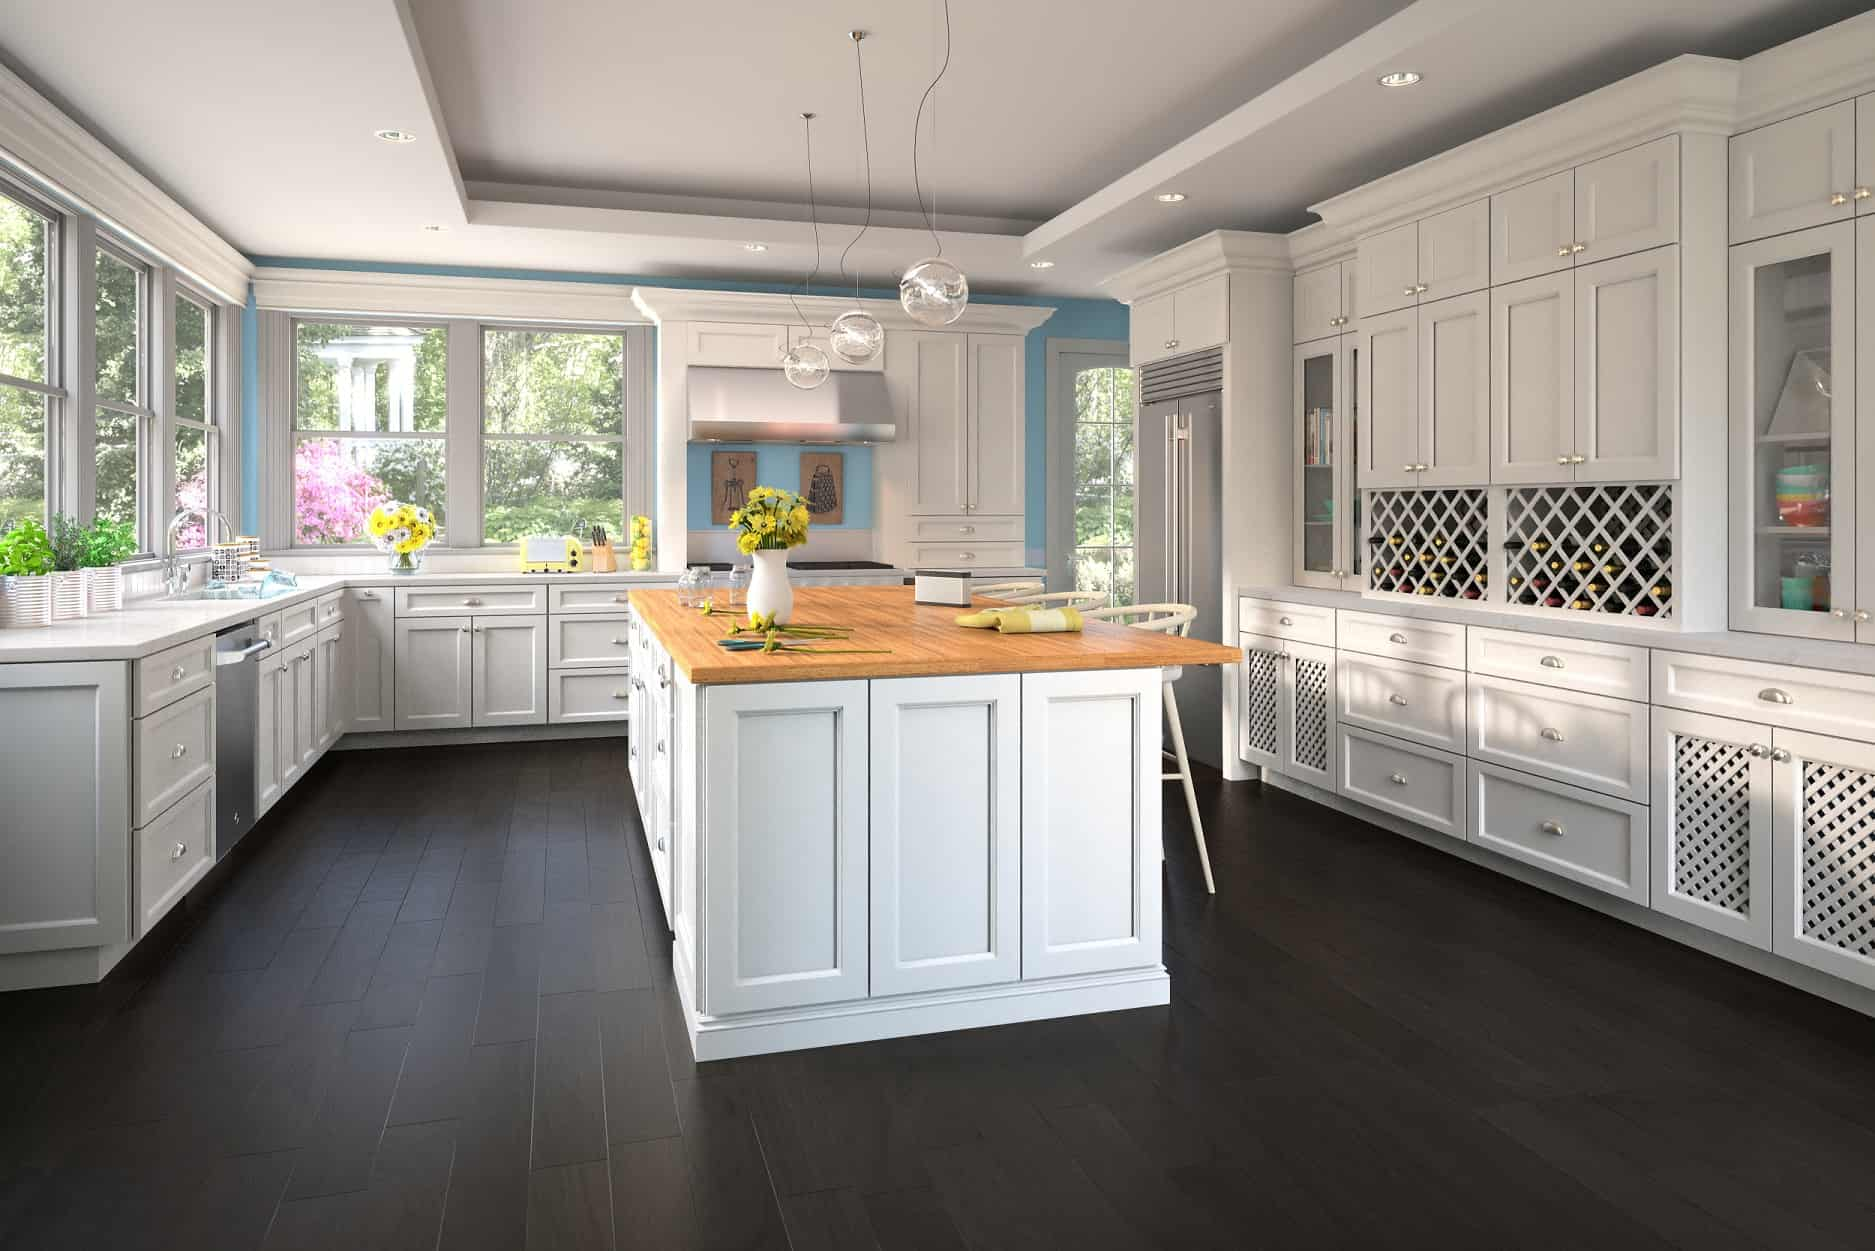 What is The Potential Cost to Refinish Your Old Kitchen Cabinets